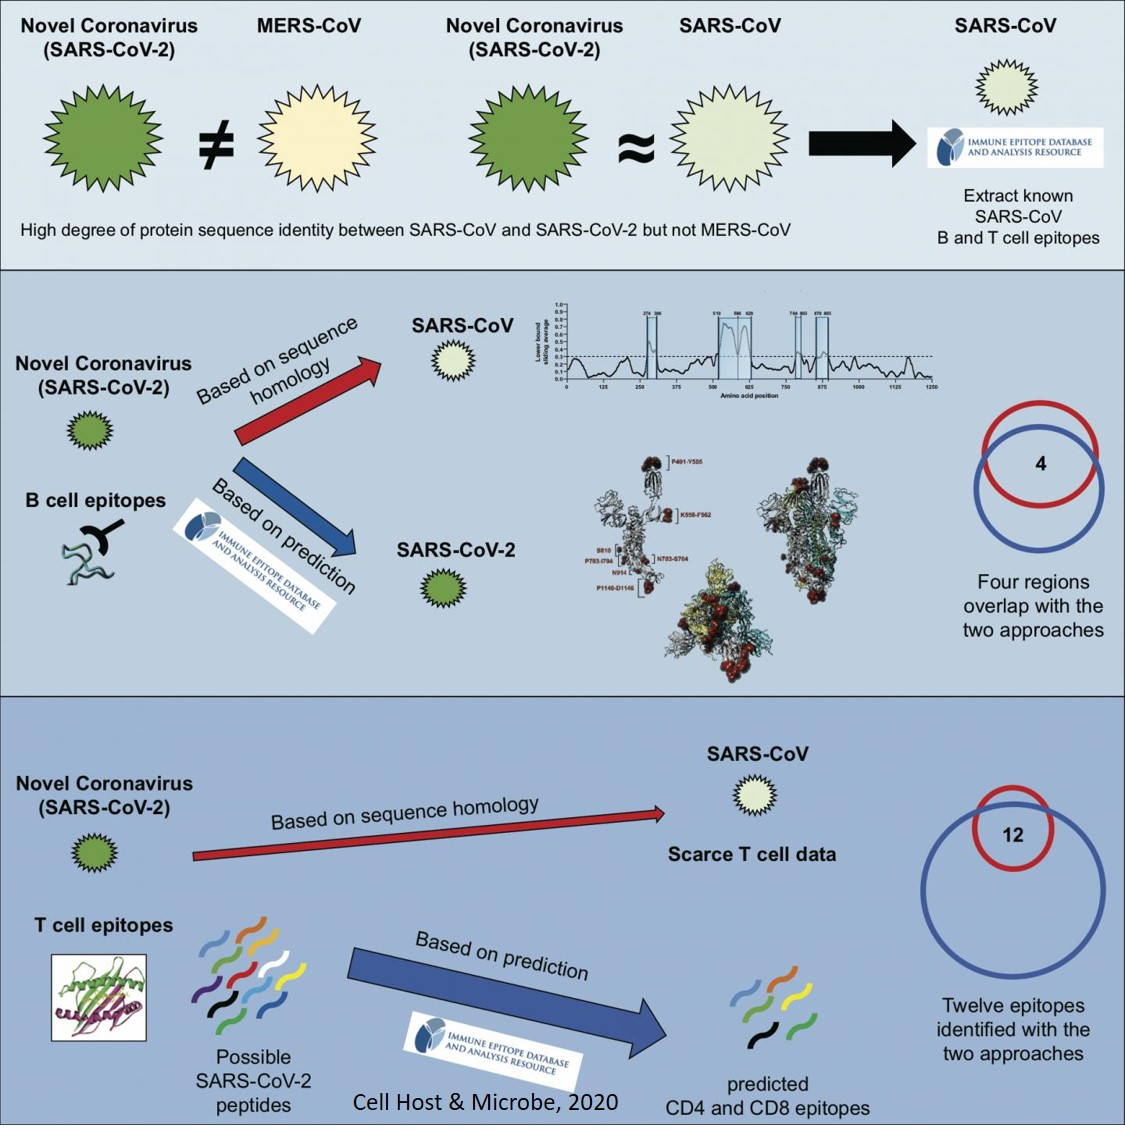 Identifying potential targets for immune responses to novel coronavirus